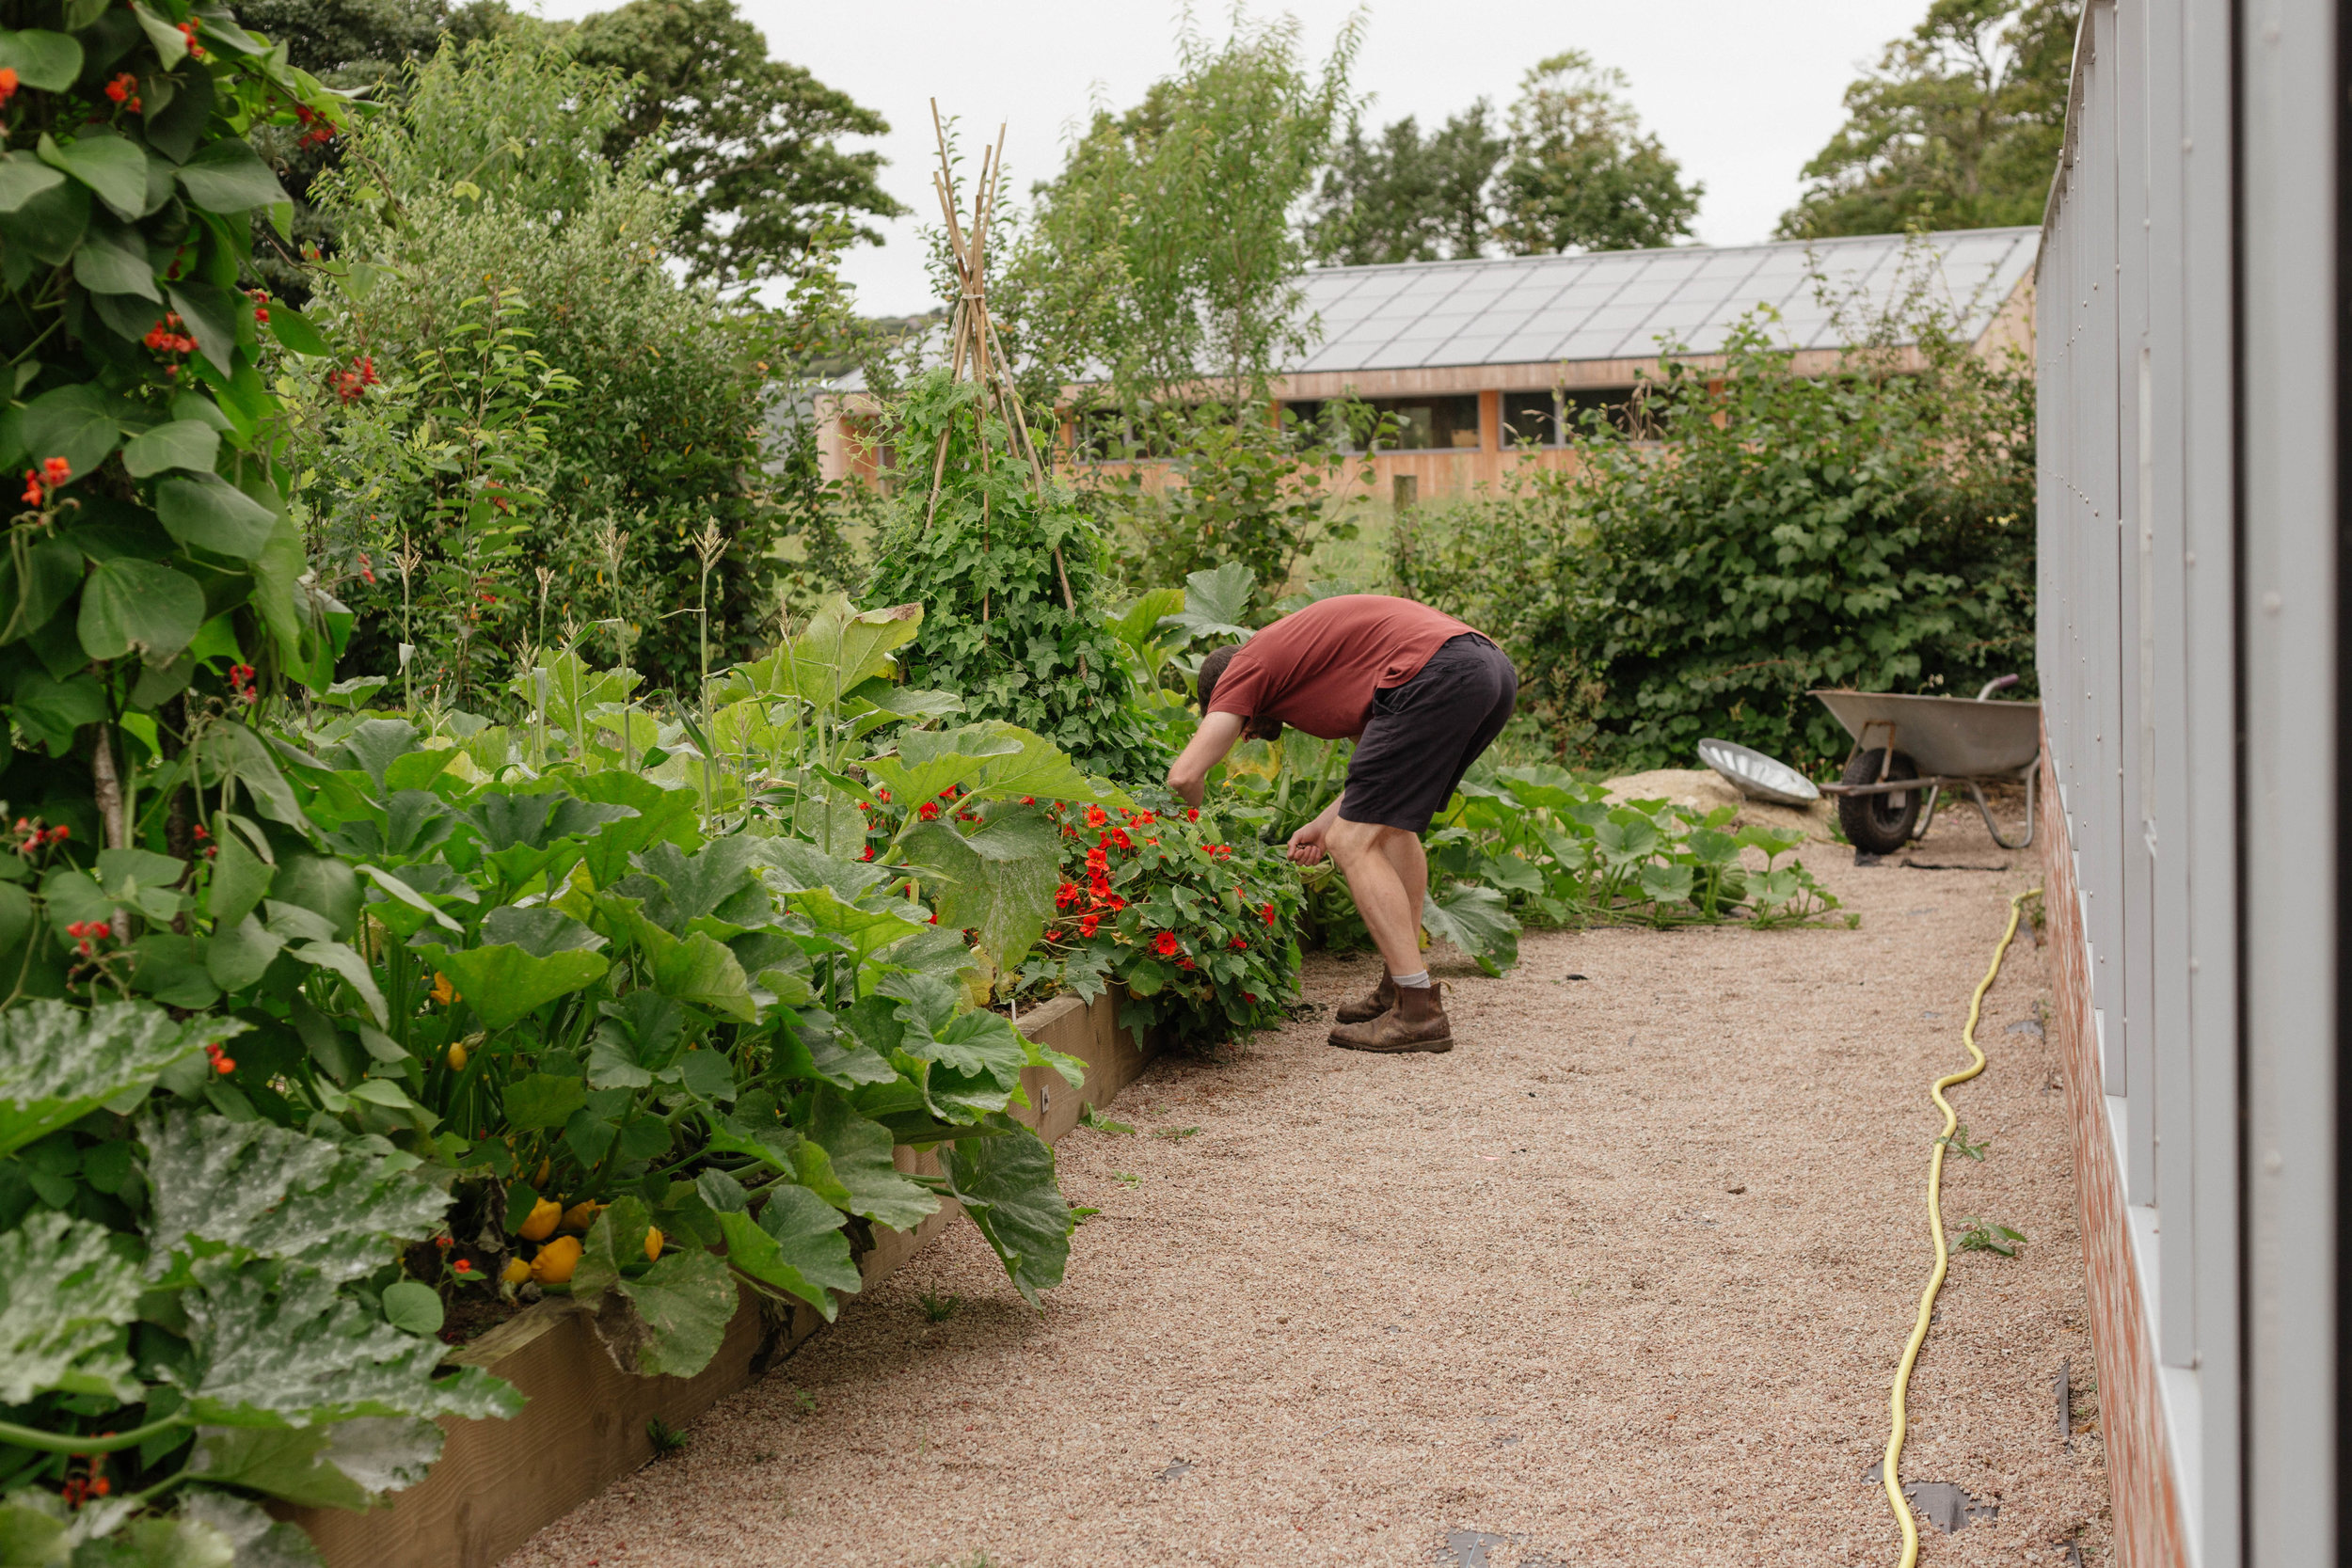 In his forest garden, James rummages through a vegetable bed of summer squash and beans.